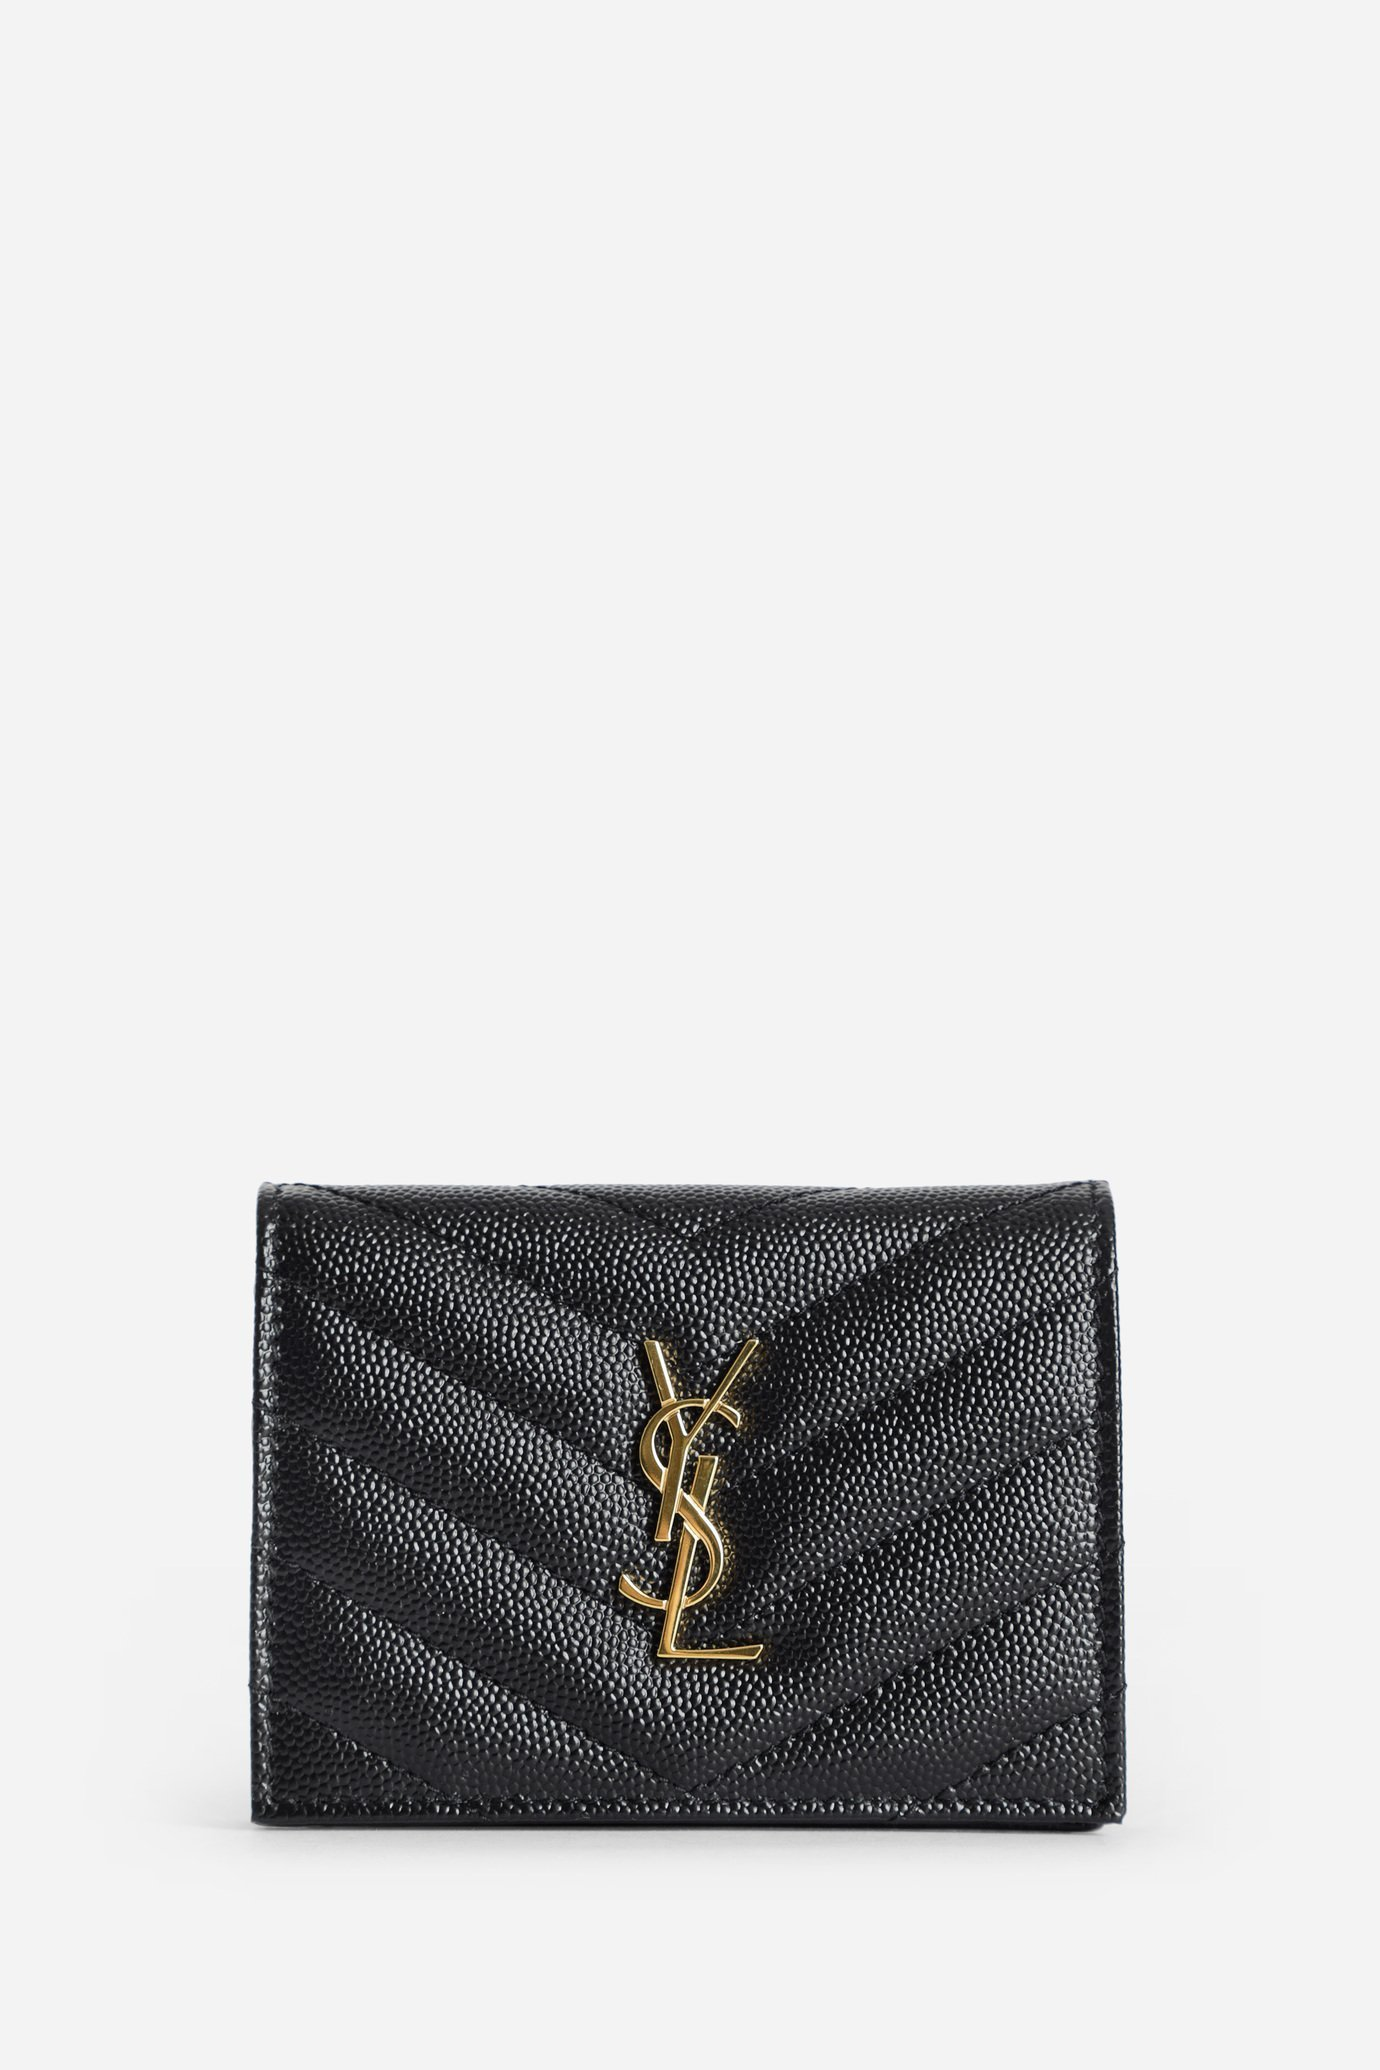 shop tom ford saint laurent